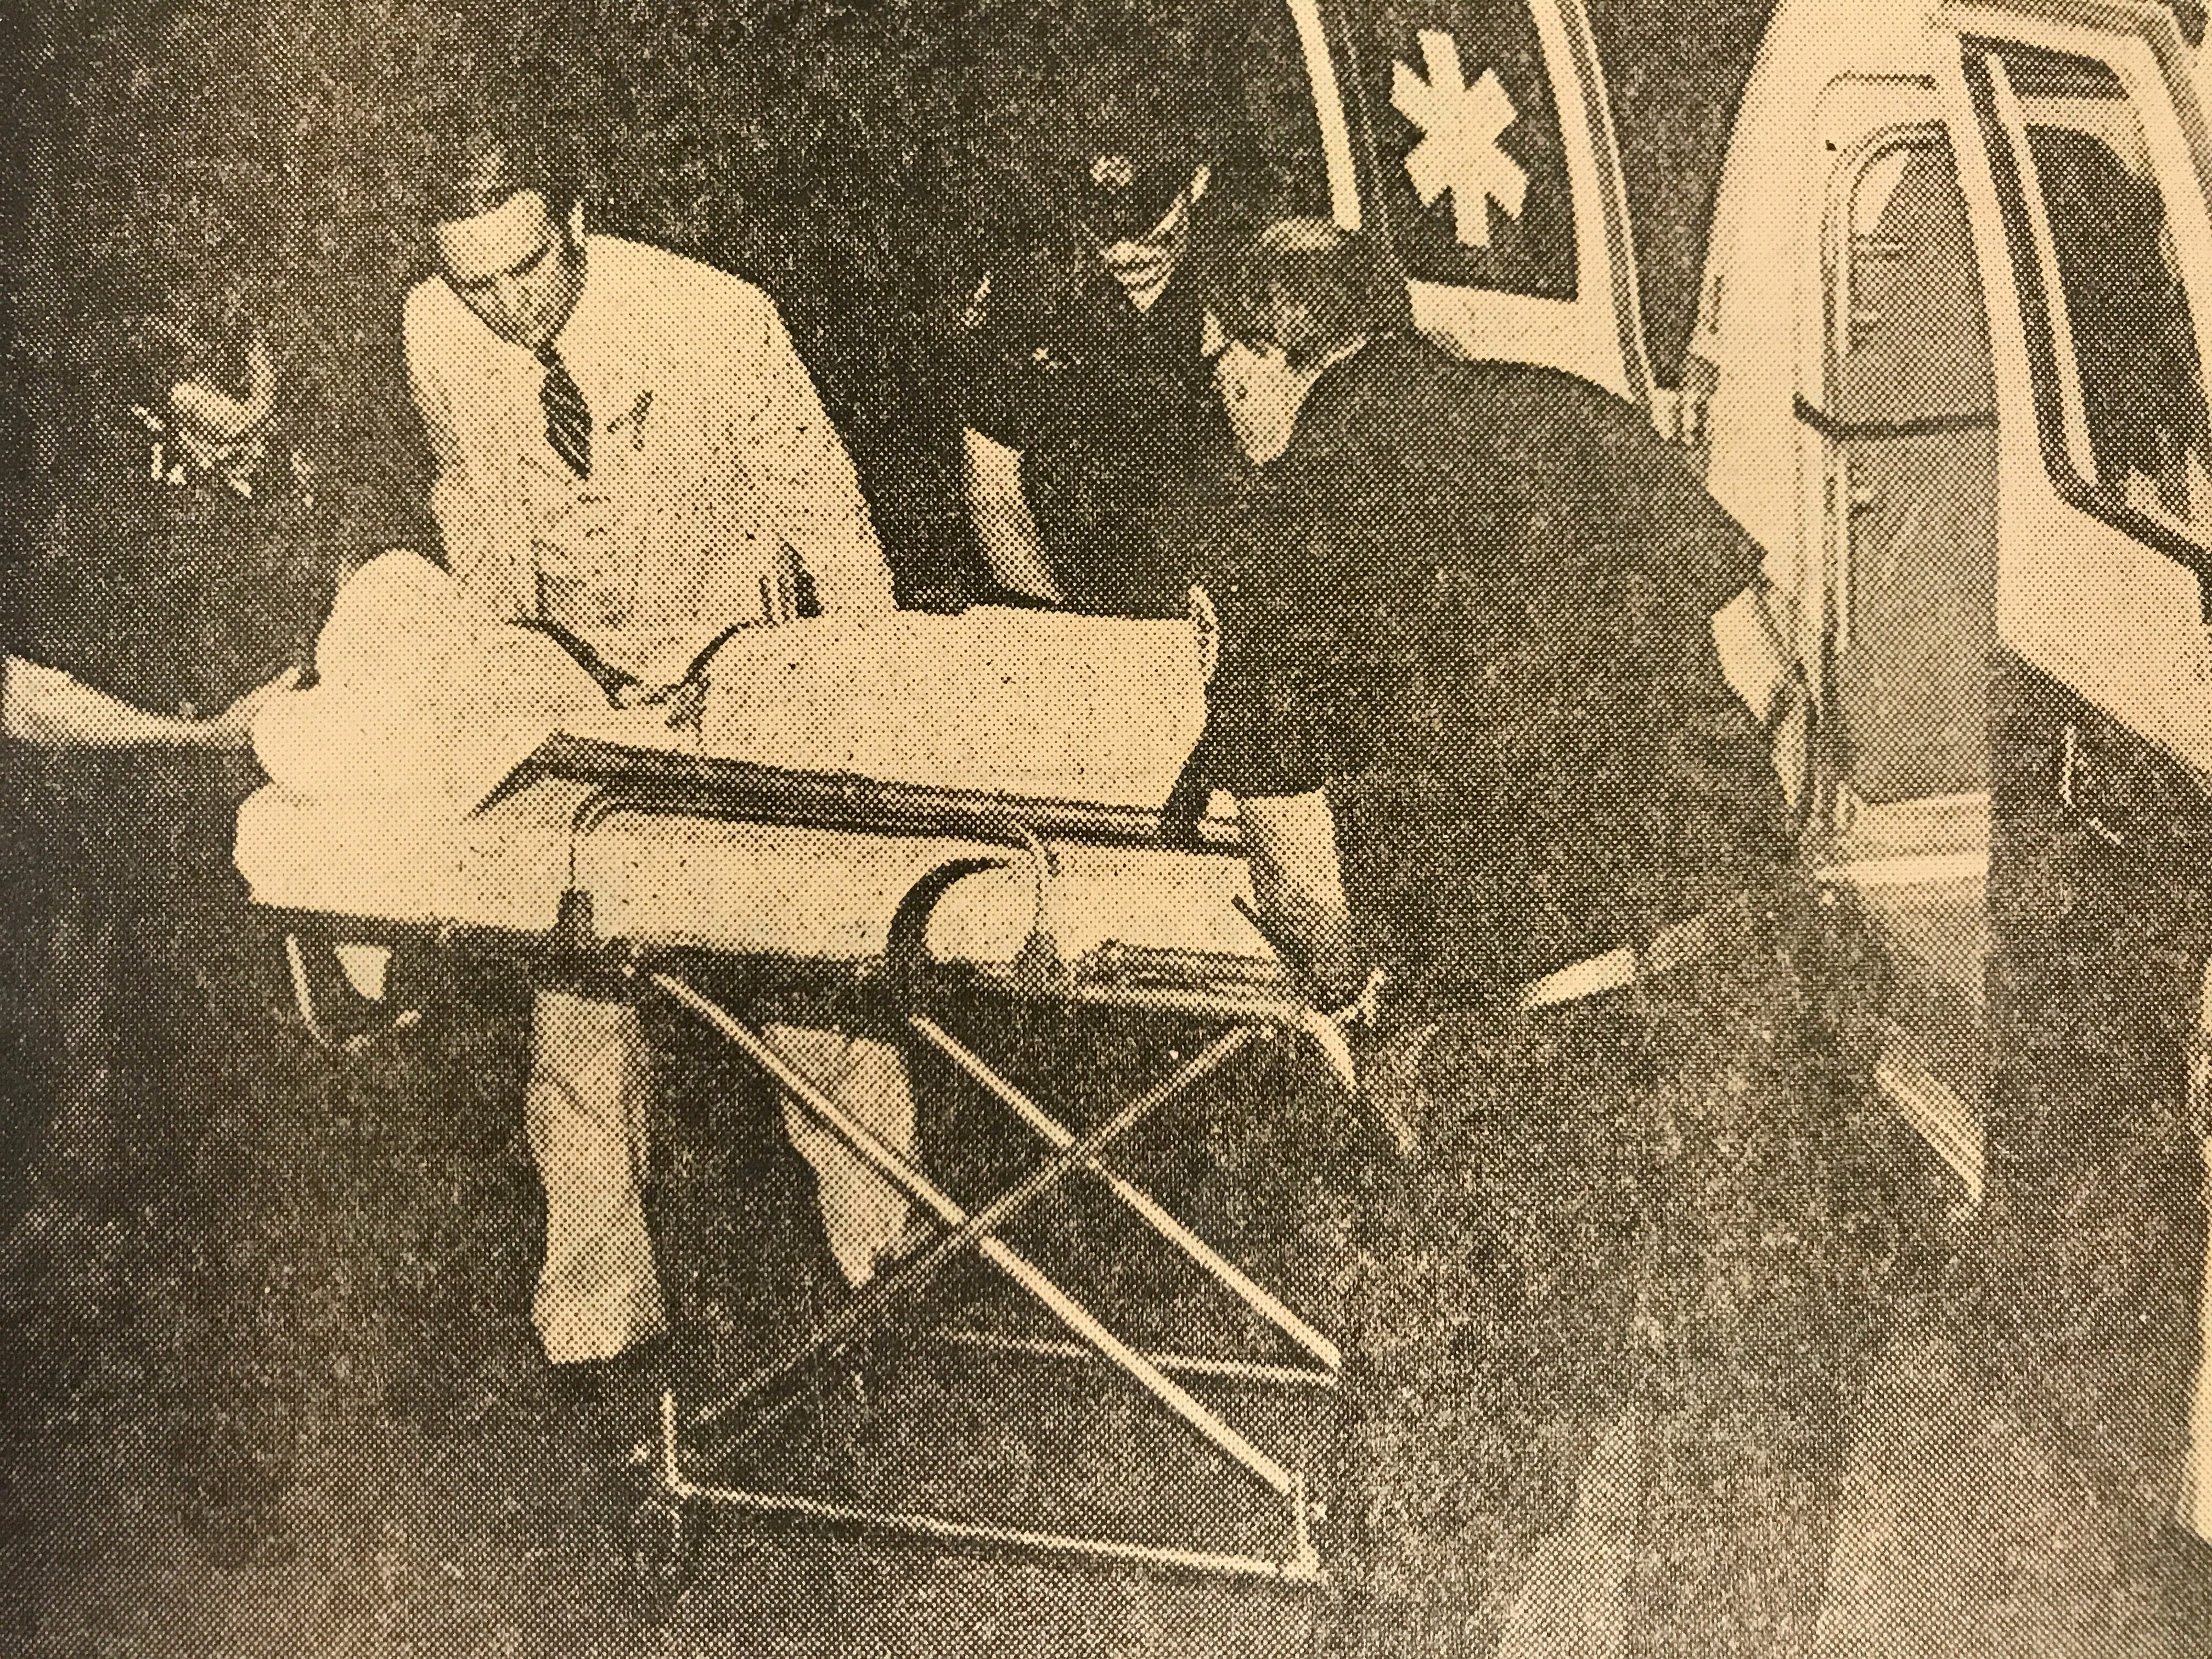 Lee Standifer's body is moved into an ambulance after her murder in this News Sentinel archive photo.